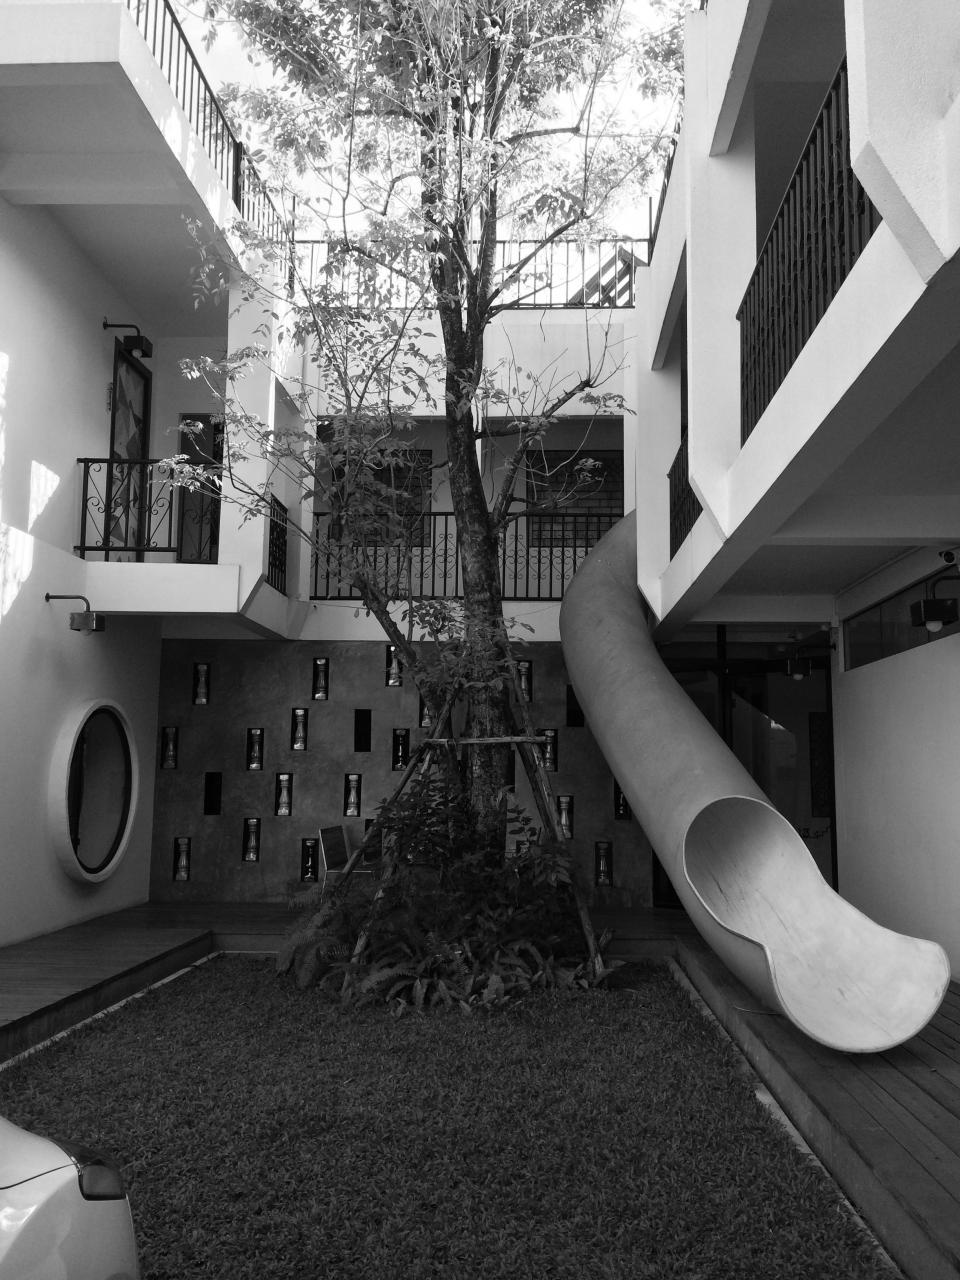 hotel slide architecture balcony balconies chiang mai thailand black and white tree